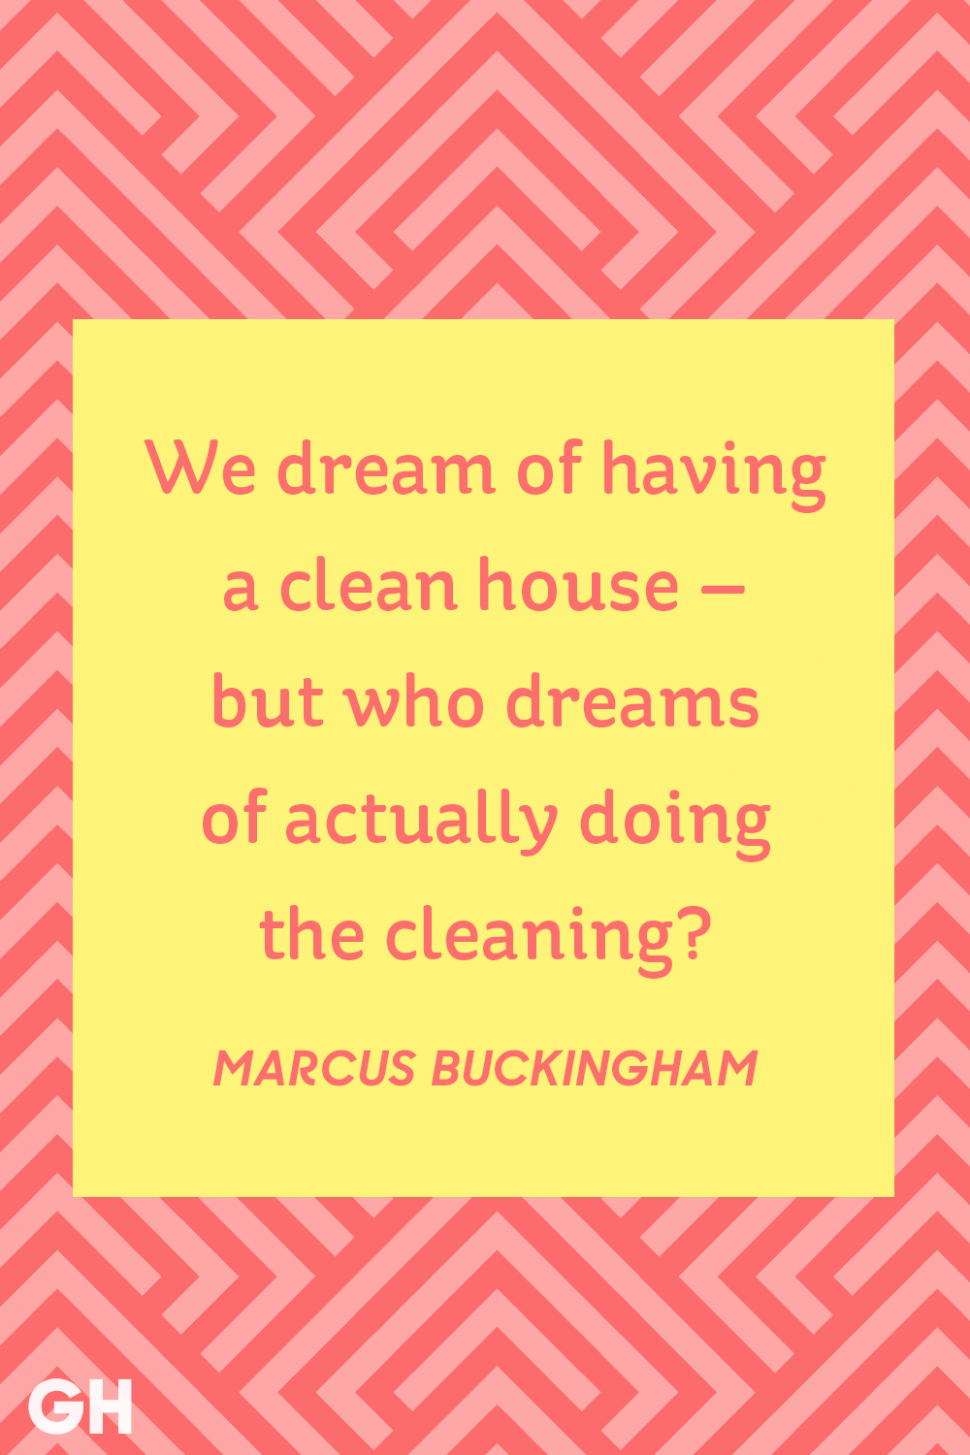 12 Funny Cleaning Quotes - Famous Quotes About a Clean House - house cleaning inspiration